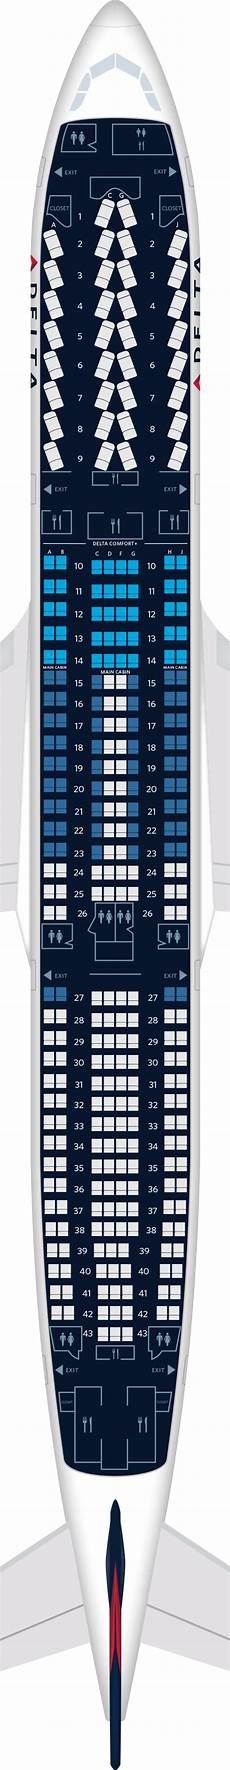 Delta Airlines Seating Chart Delta Airlines Flight 837 Seating Chart Awesome Home